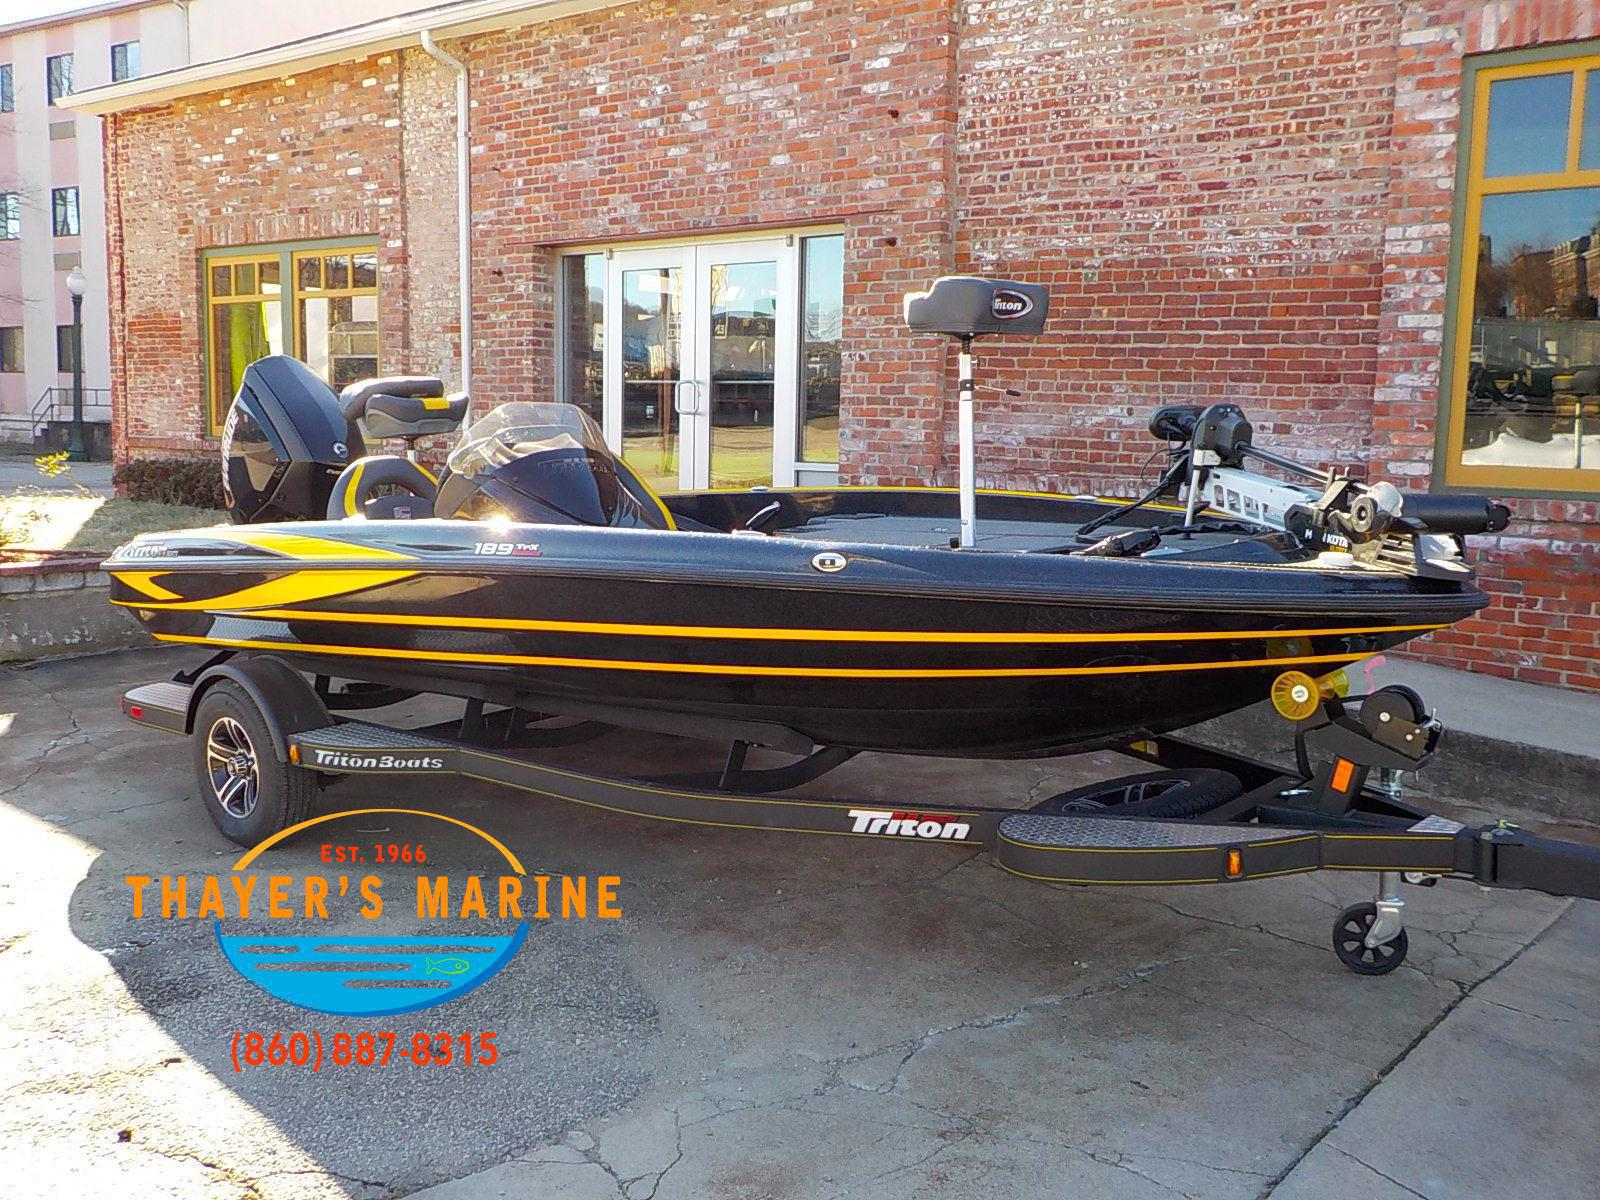 Inventory from Triton Boats Thayer's Marine Inc  Norwich, CT